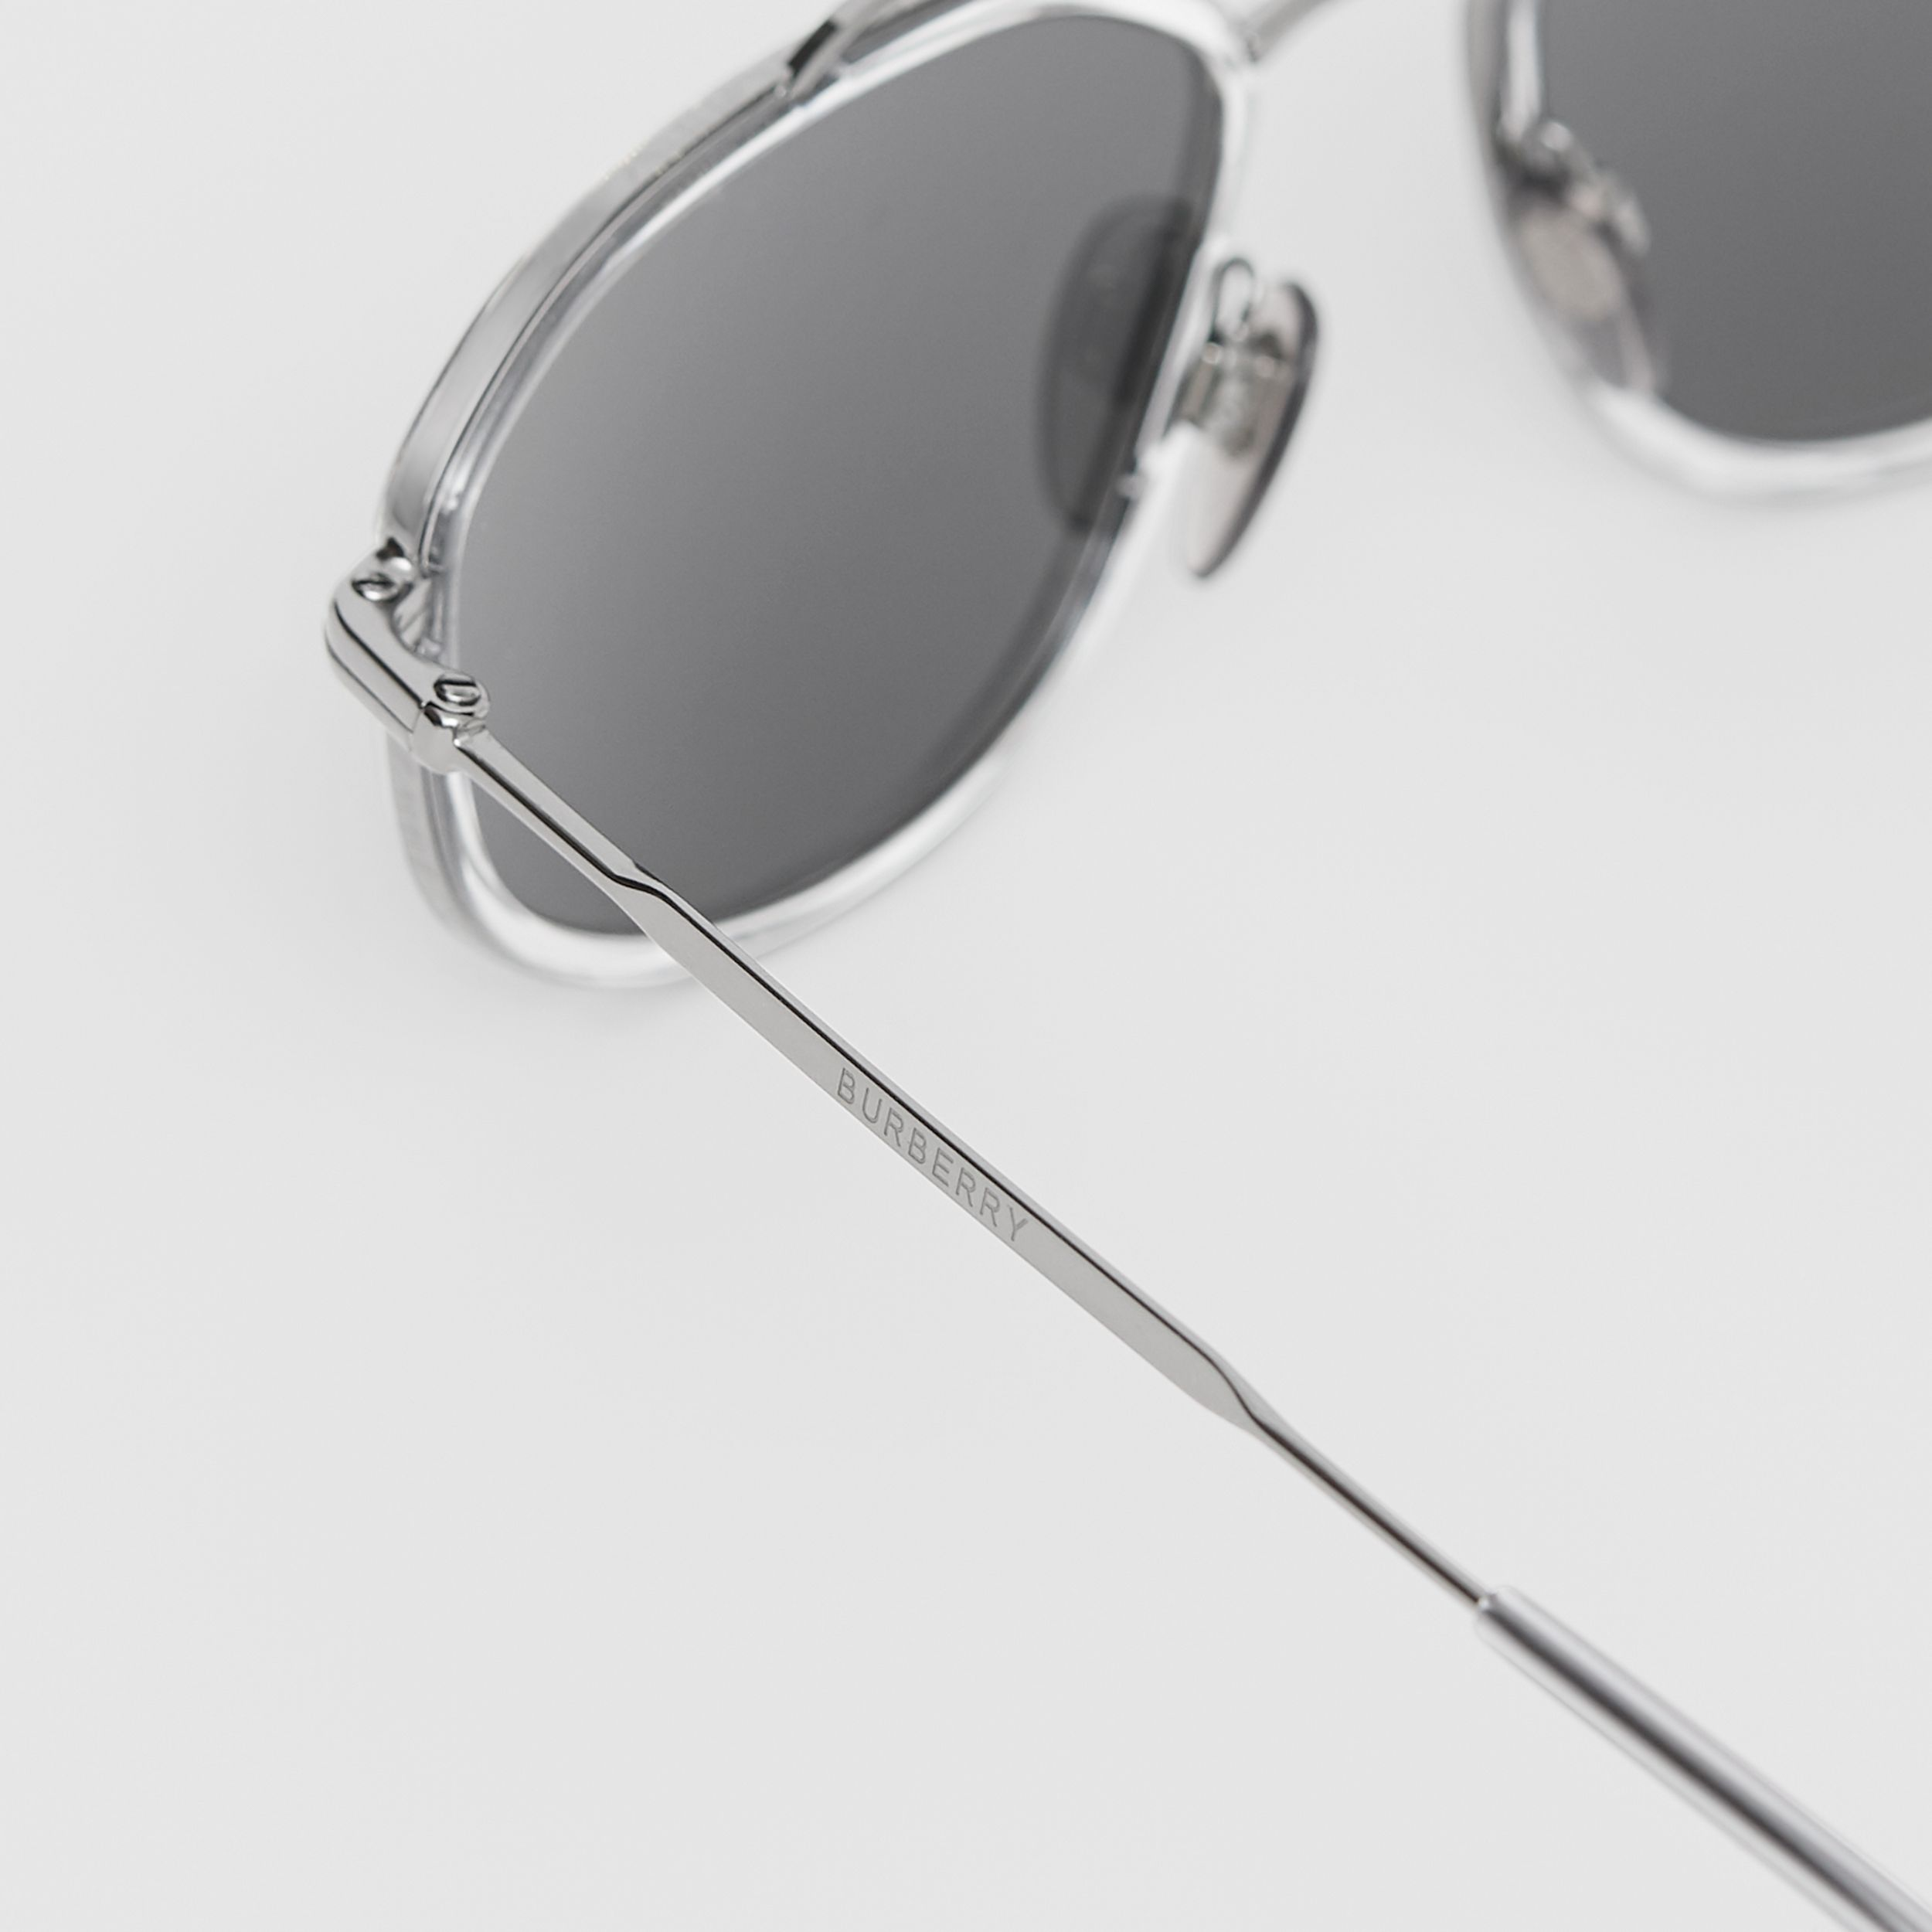 Geometric Navigator Sunglasses in Gunmetal Grey - Men | Burberry - 2